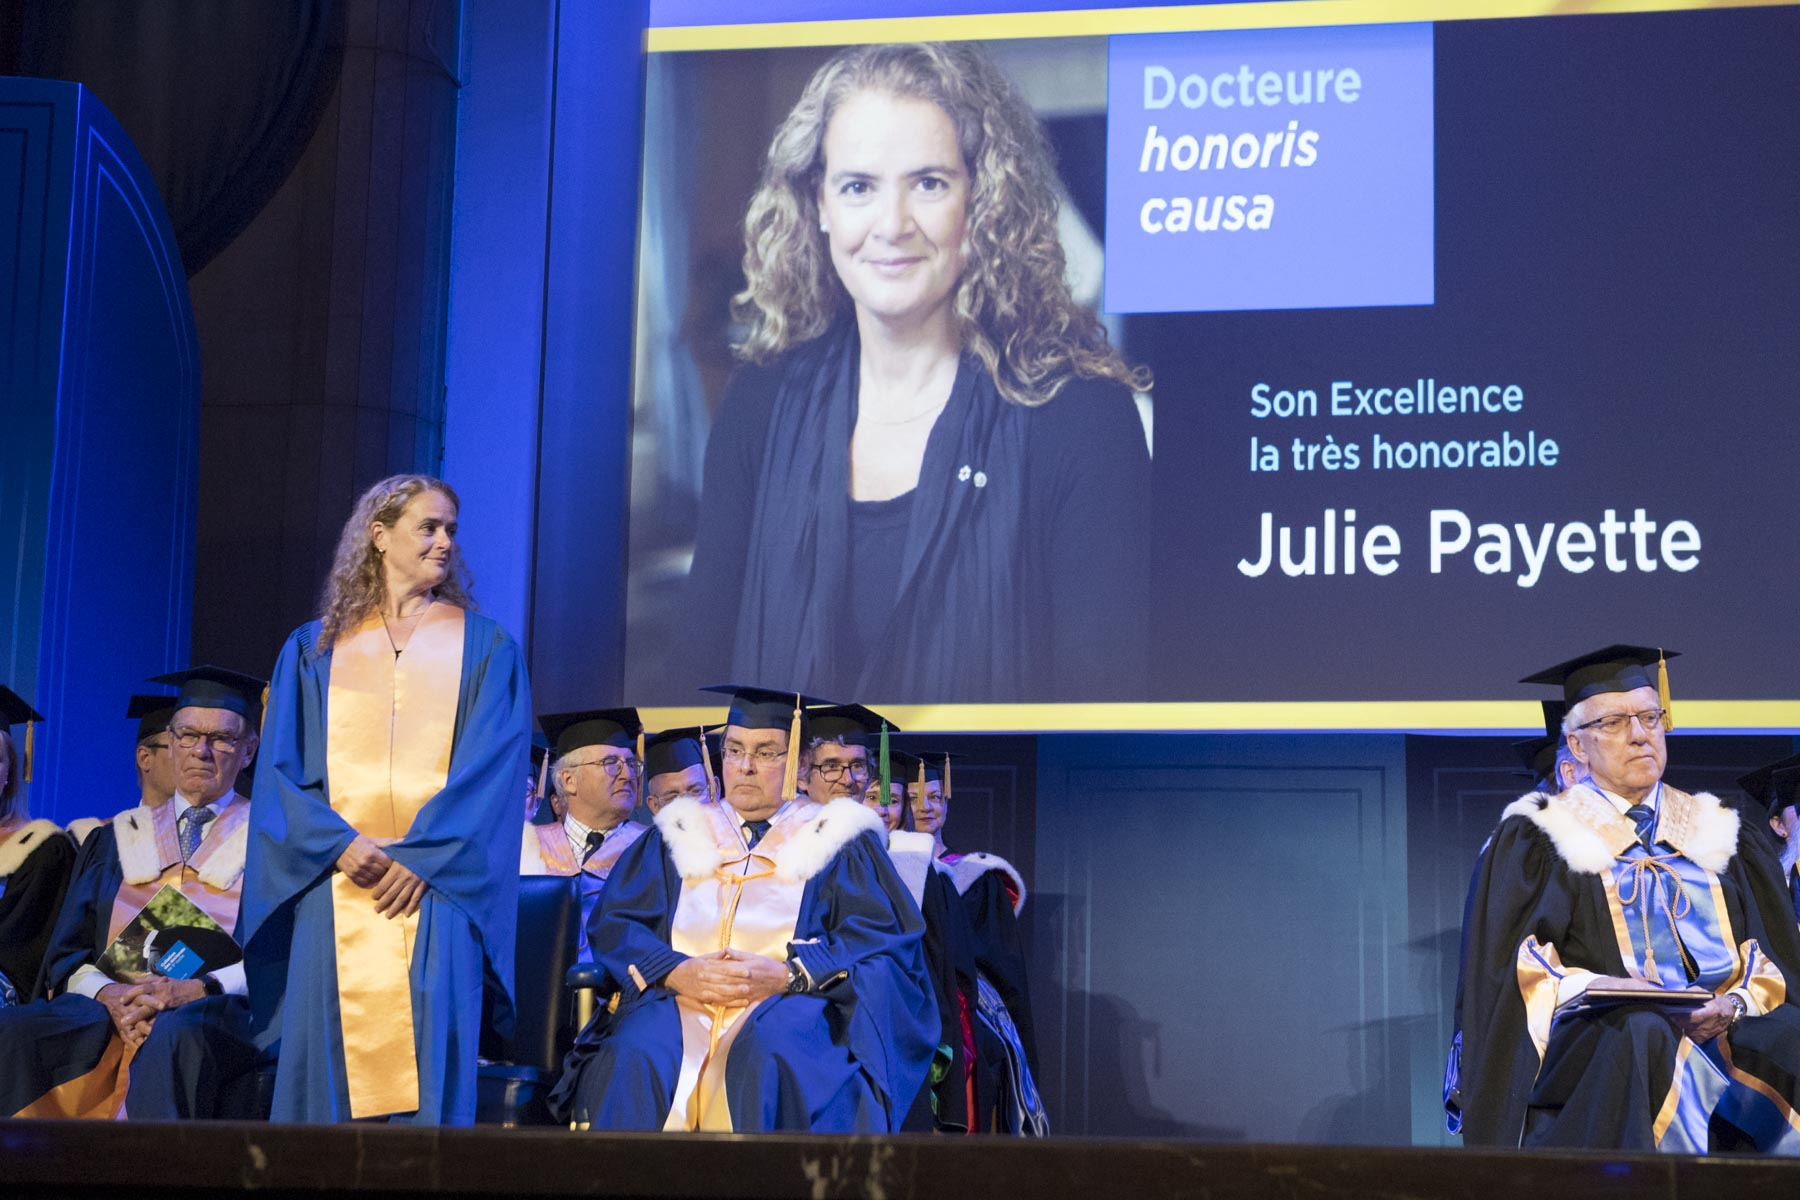 The Governor General received an honorary doctorate from the Université de Montréal during a Ph.D. convocation ceremony in the Ernest-Cormier amphitheatre.